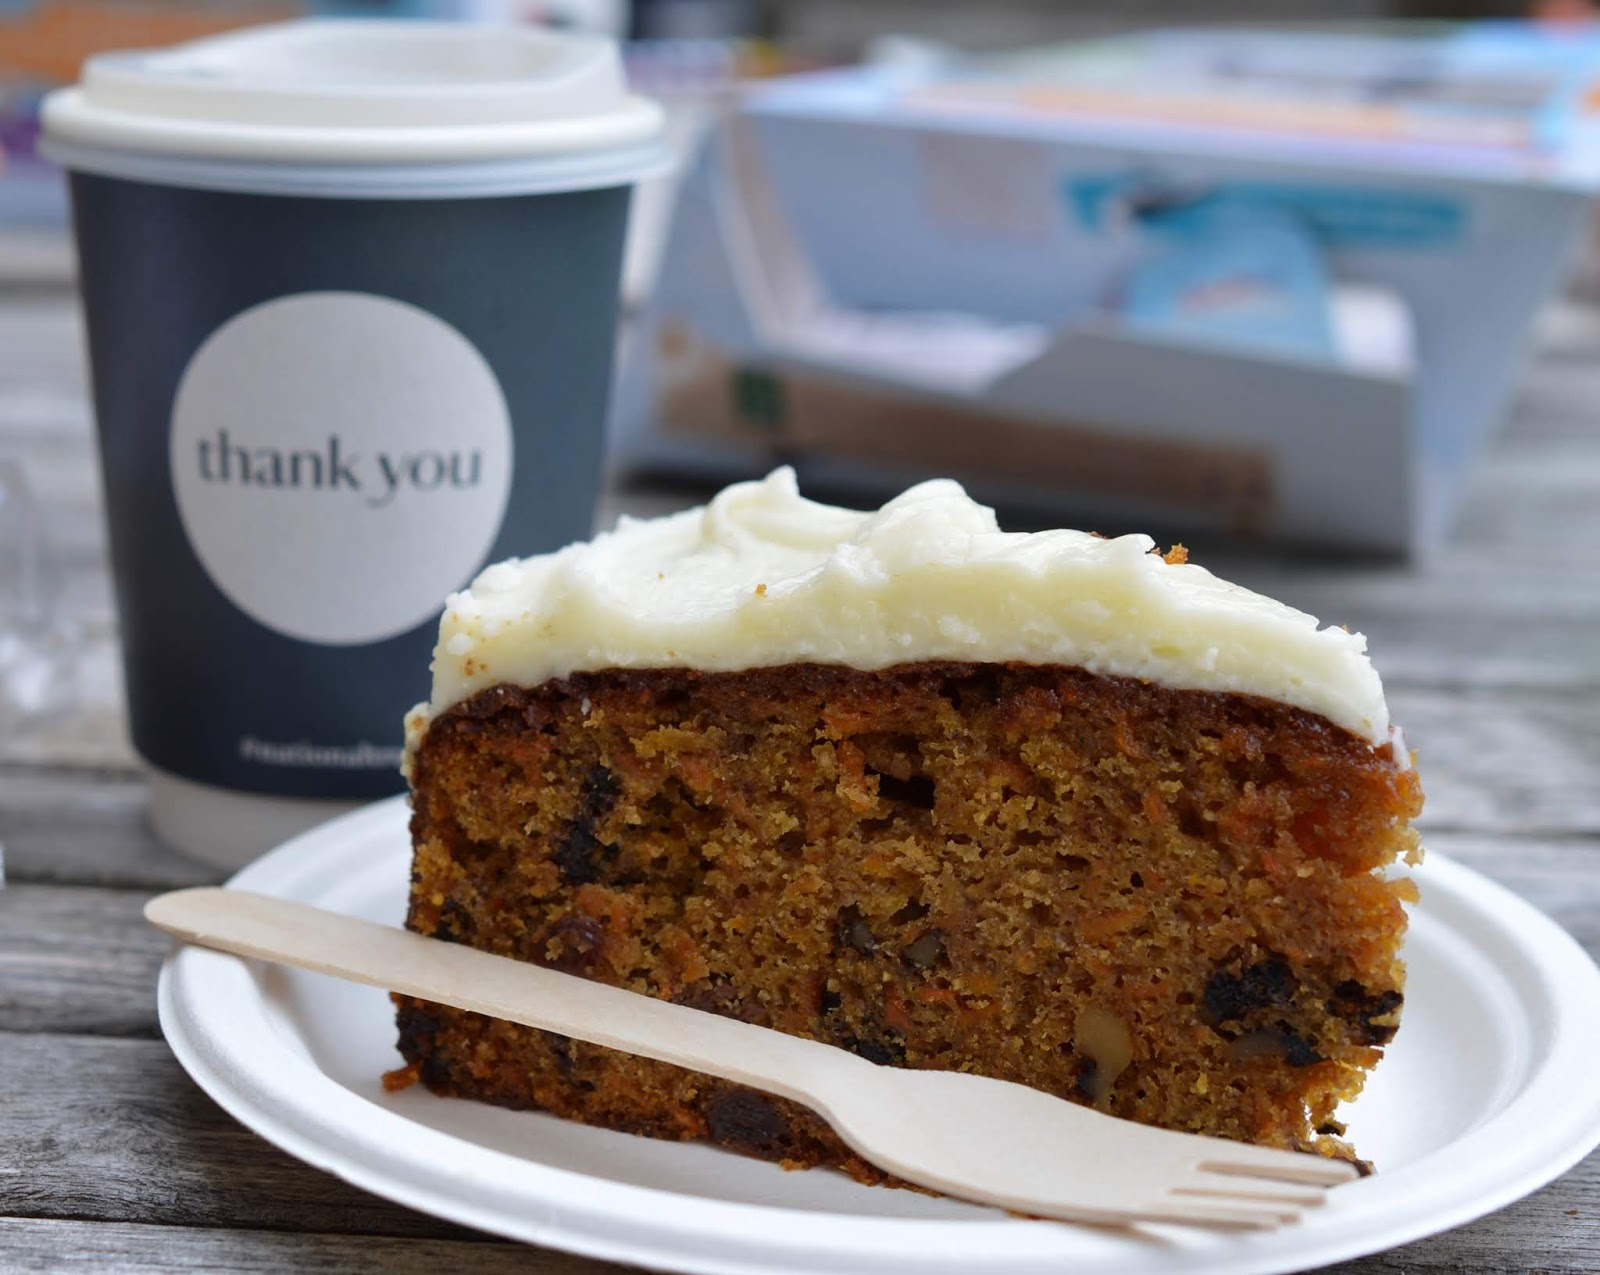 10 Reasons to Visit Seaton Delaval Hall  - homemade carrot cake